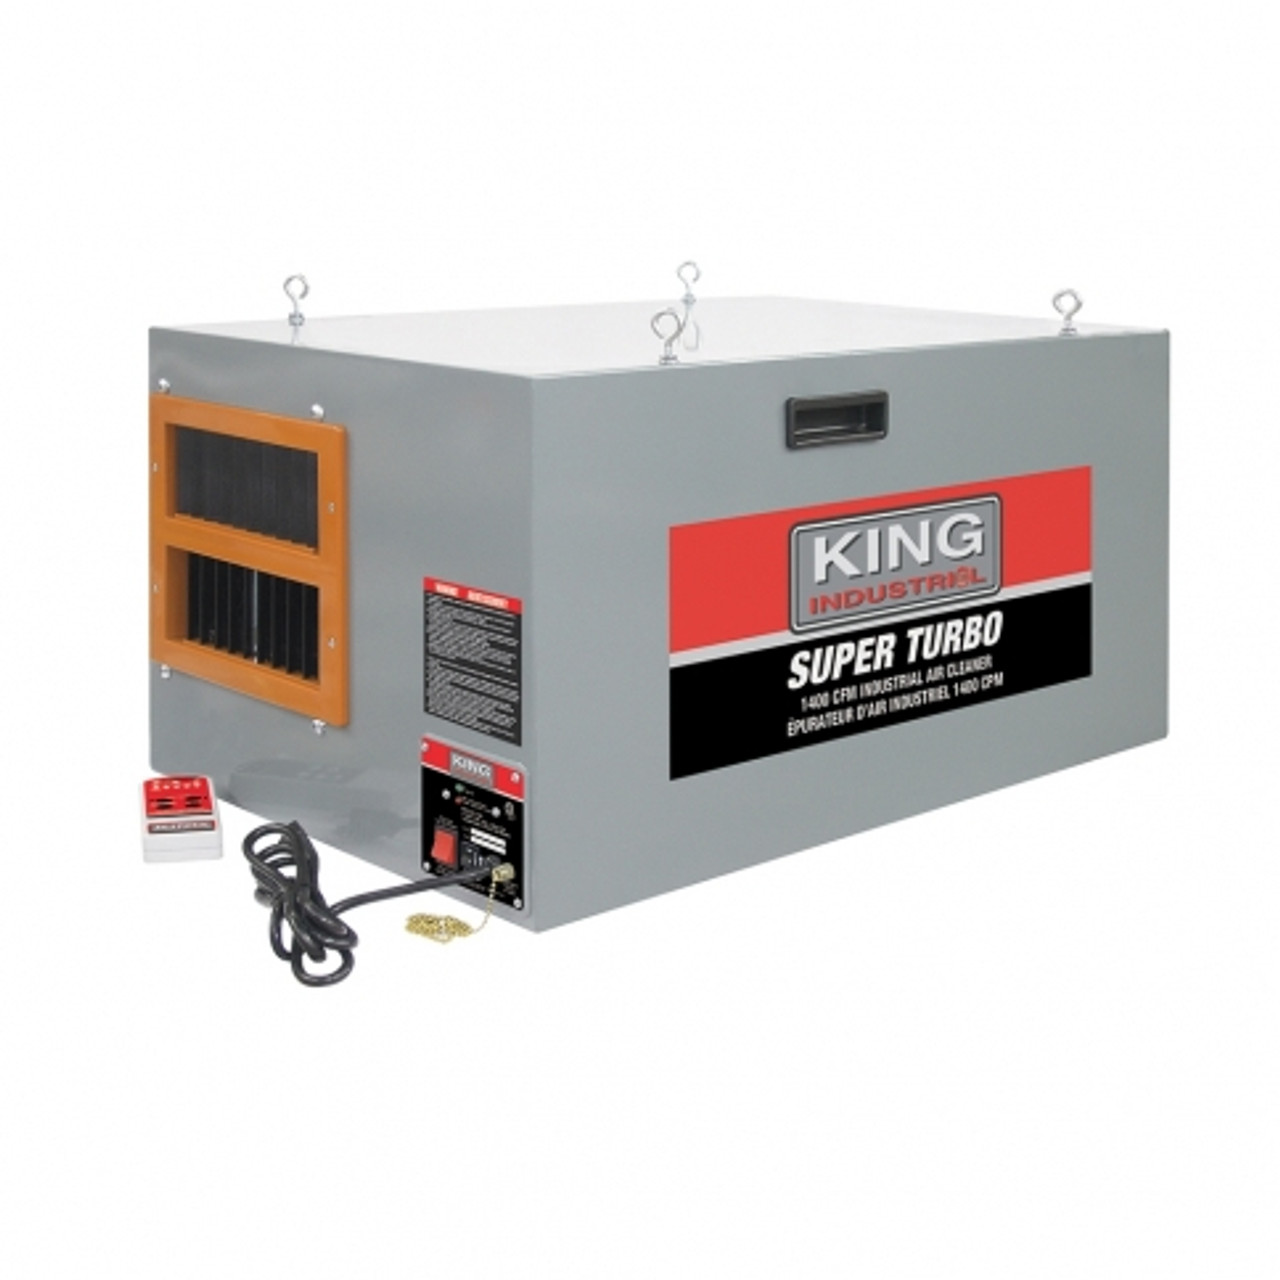 King Industrial Air Cleaner with Remote Control (KAC-1400)